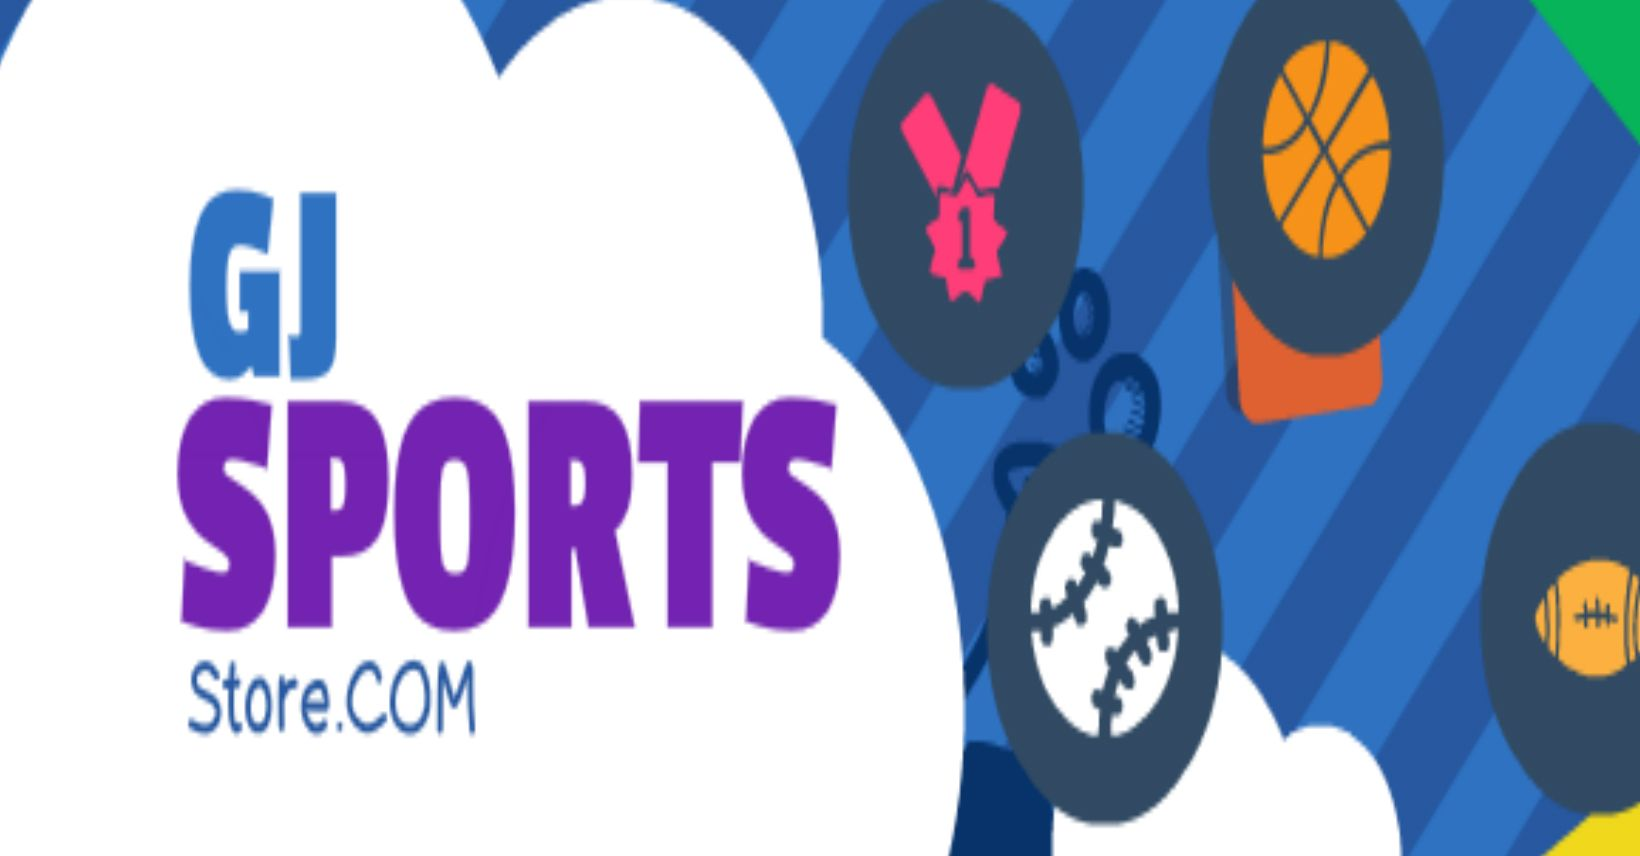 Sporting Goods Store Near Me (With images) Fun sports